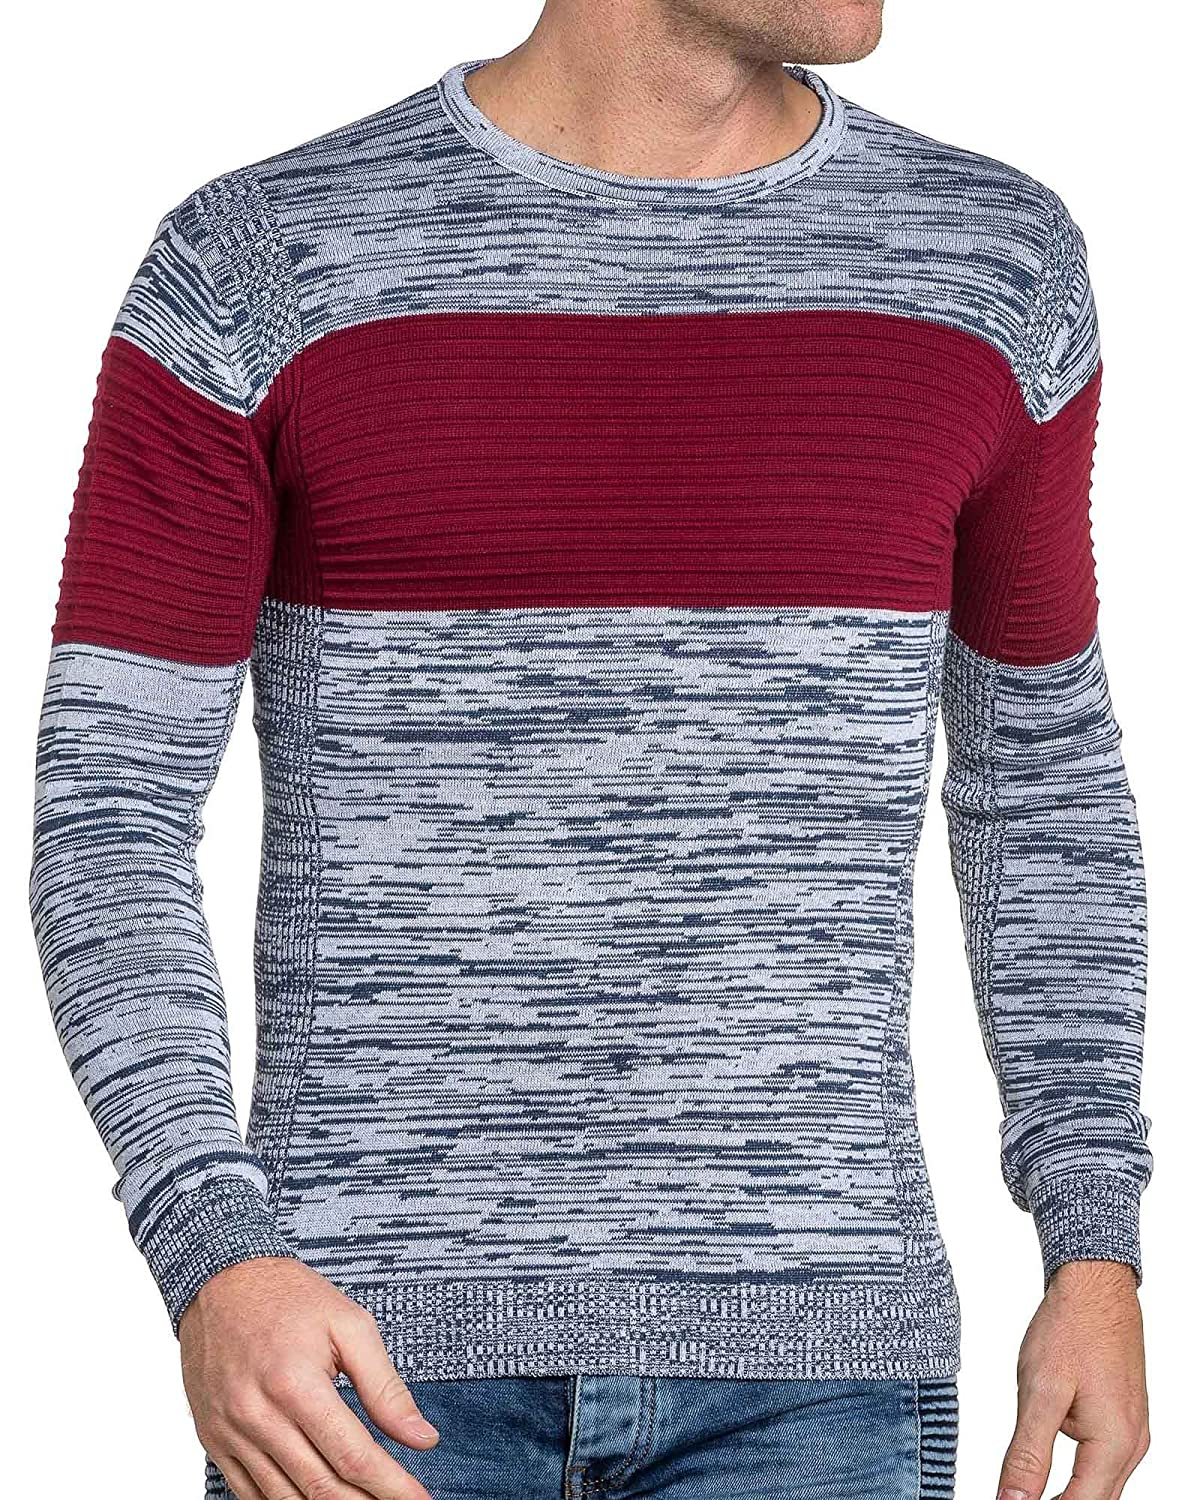 BLZ jeans - Pullover end man navy and red